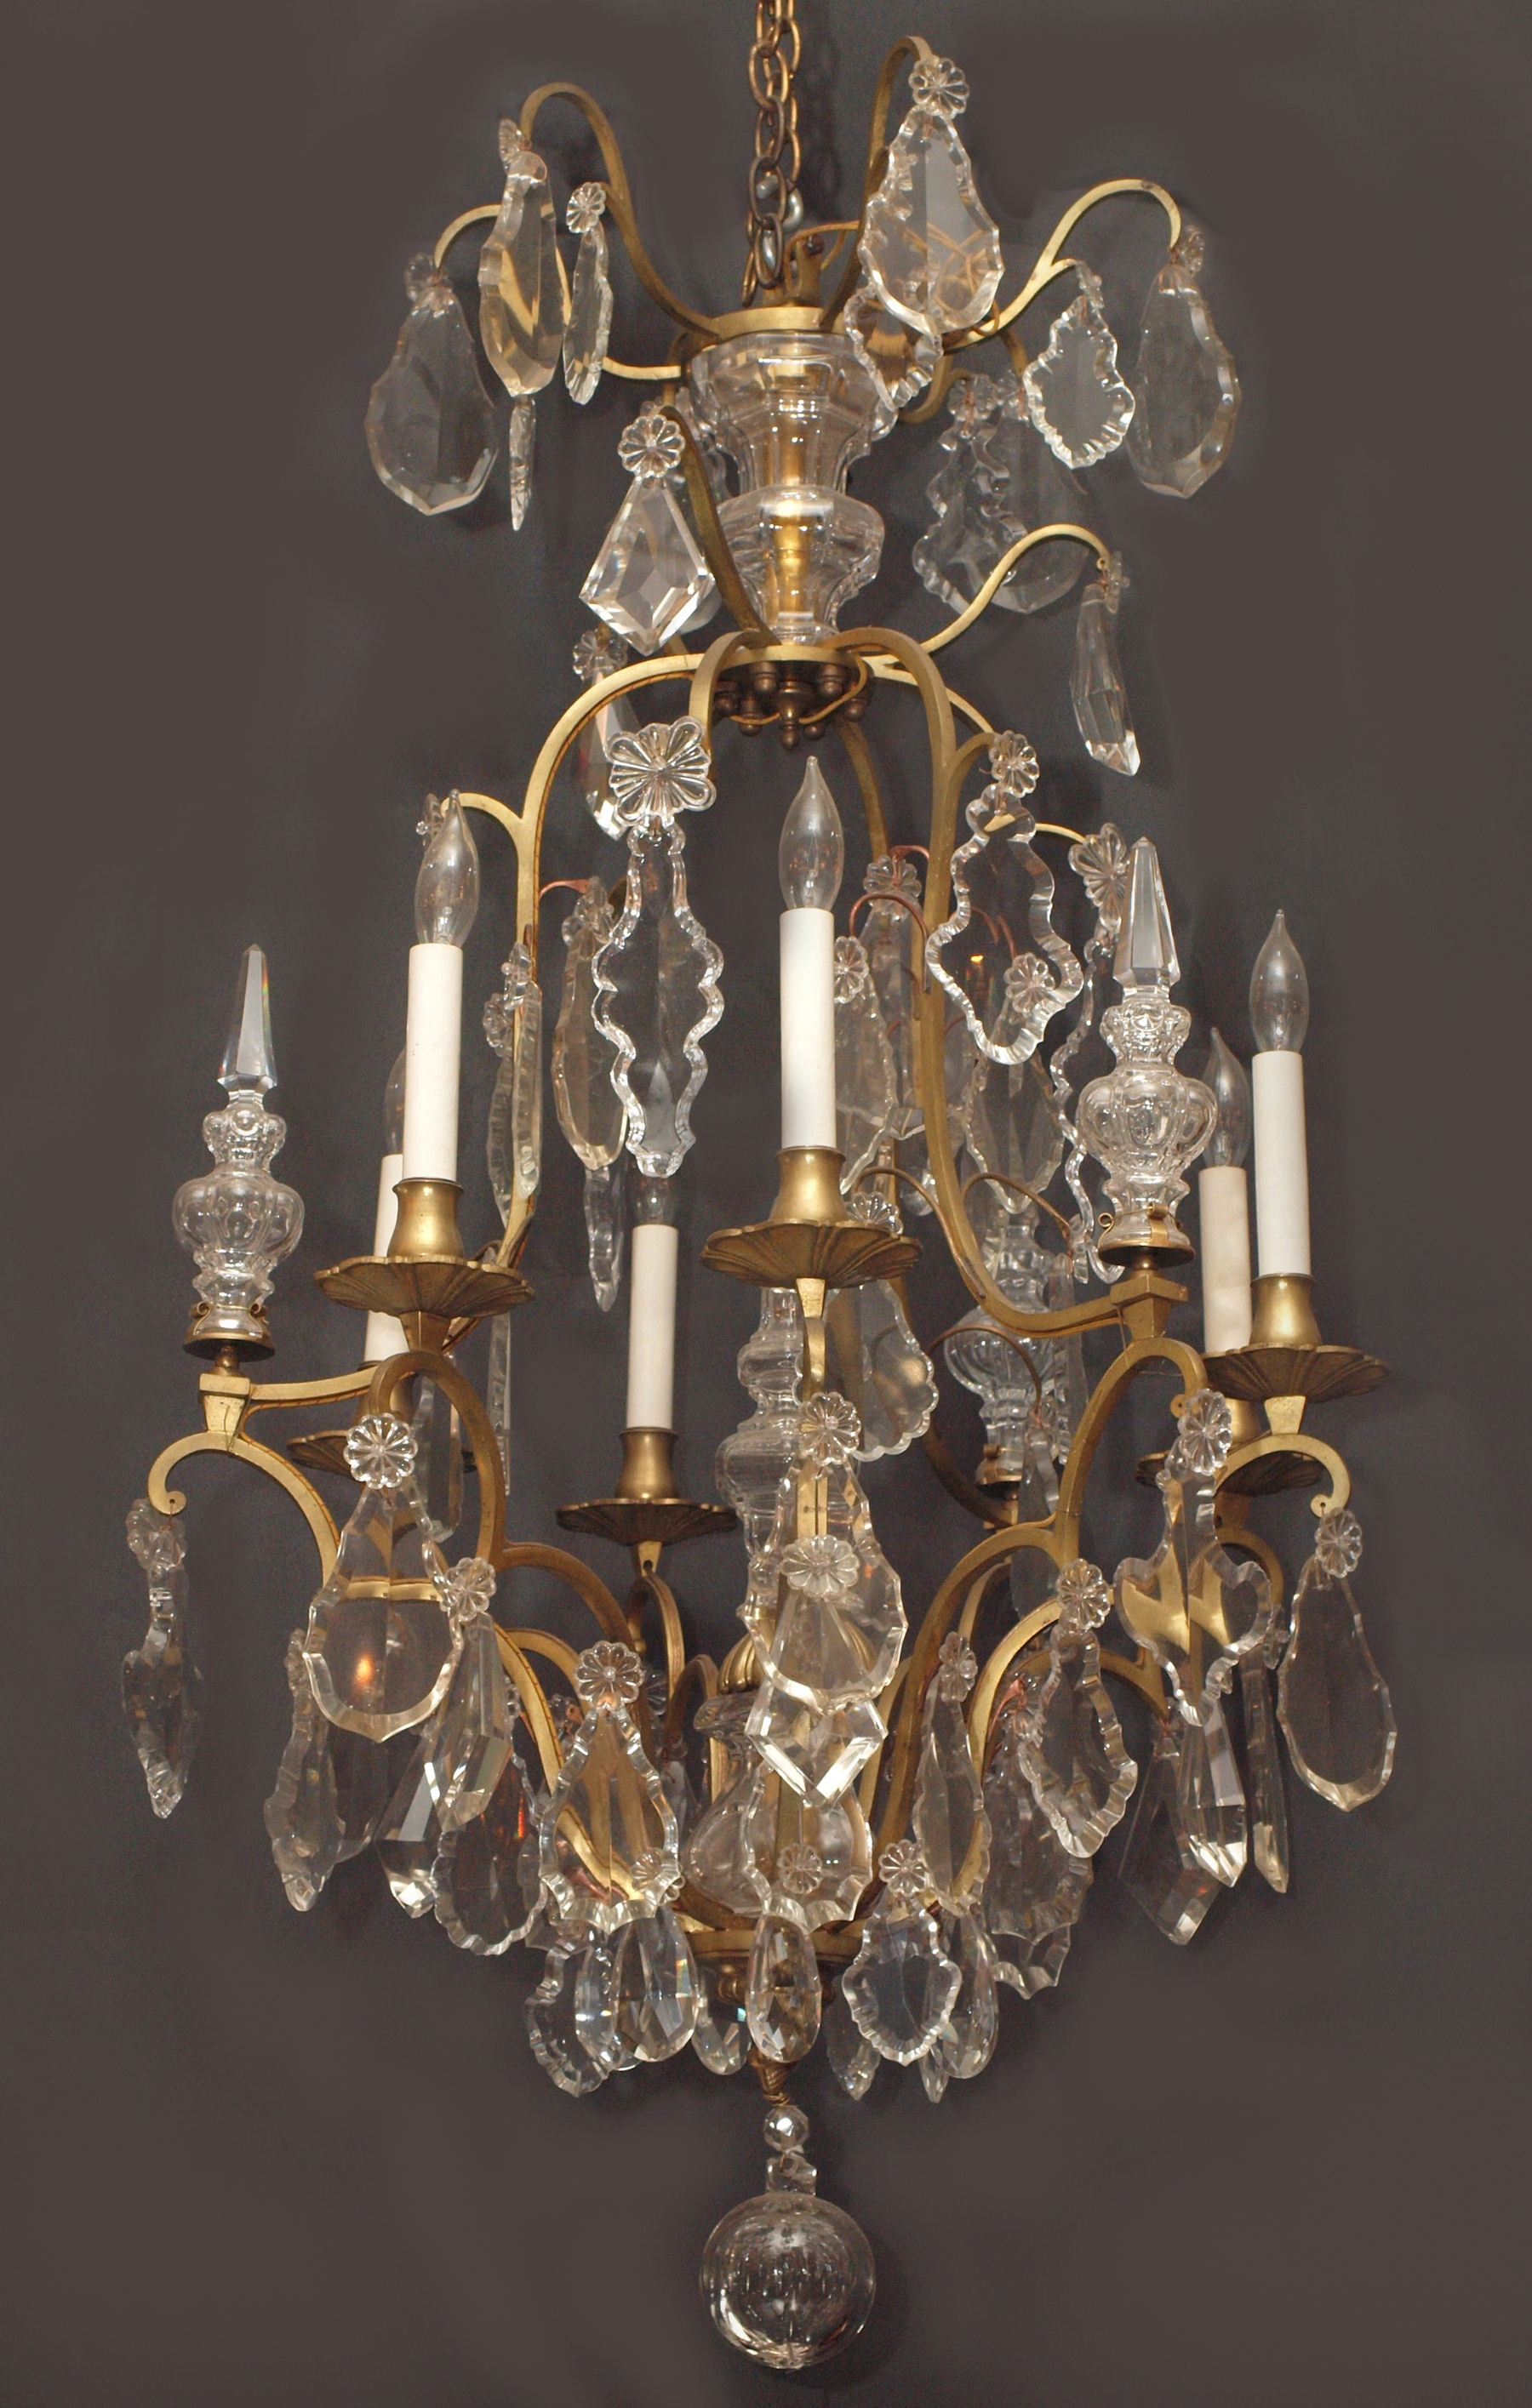 Antiques Classifieds Antiques Antique Lamps And Lighting With Antique French Chandeliers (View 8 of 15)